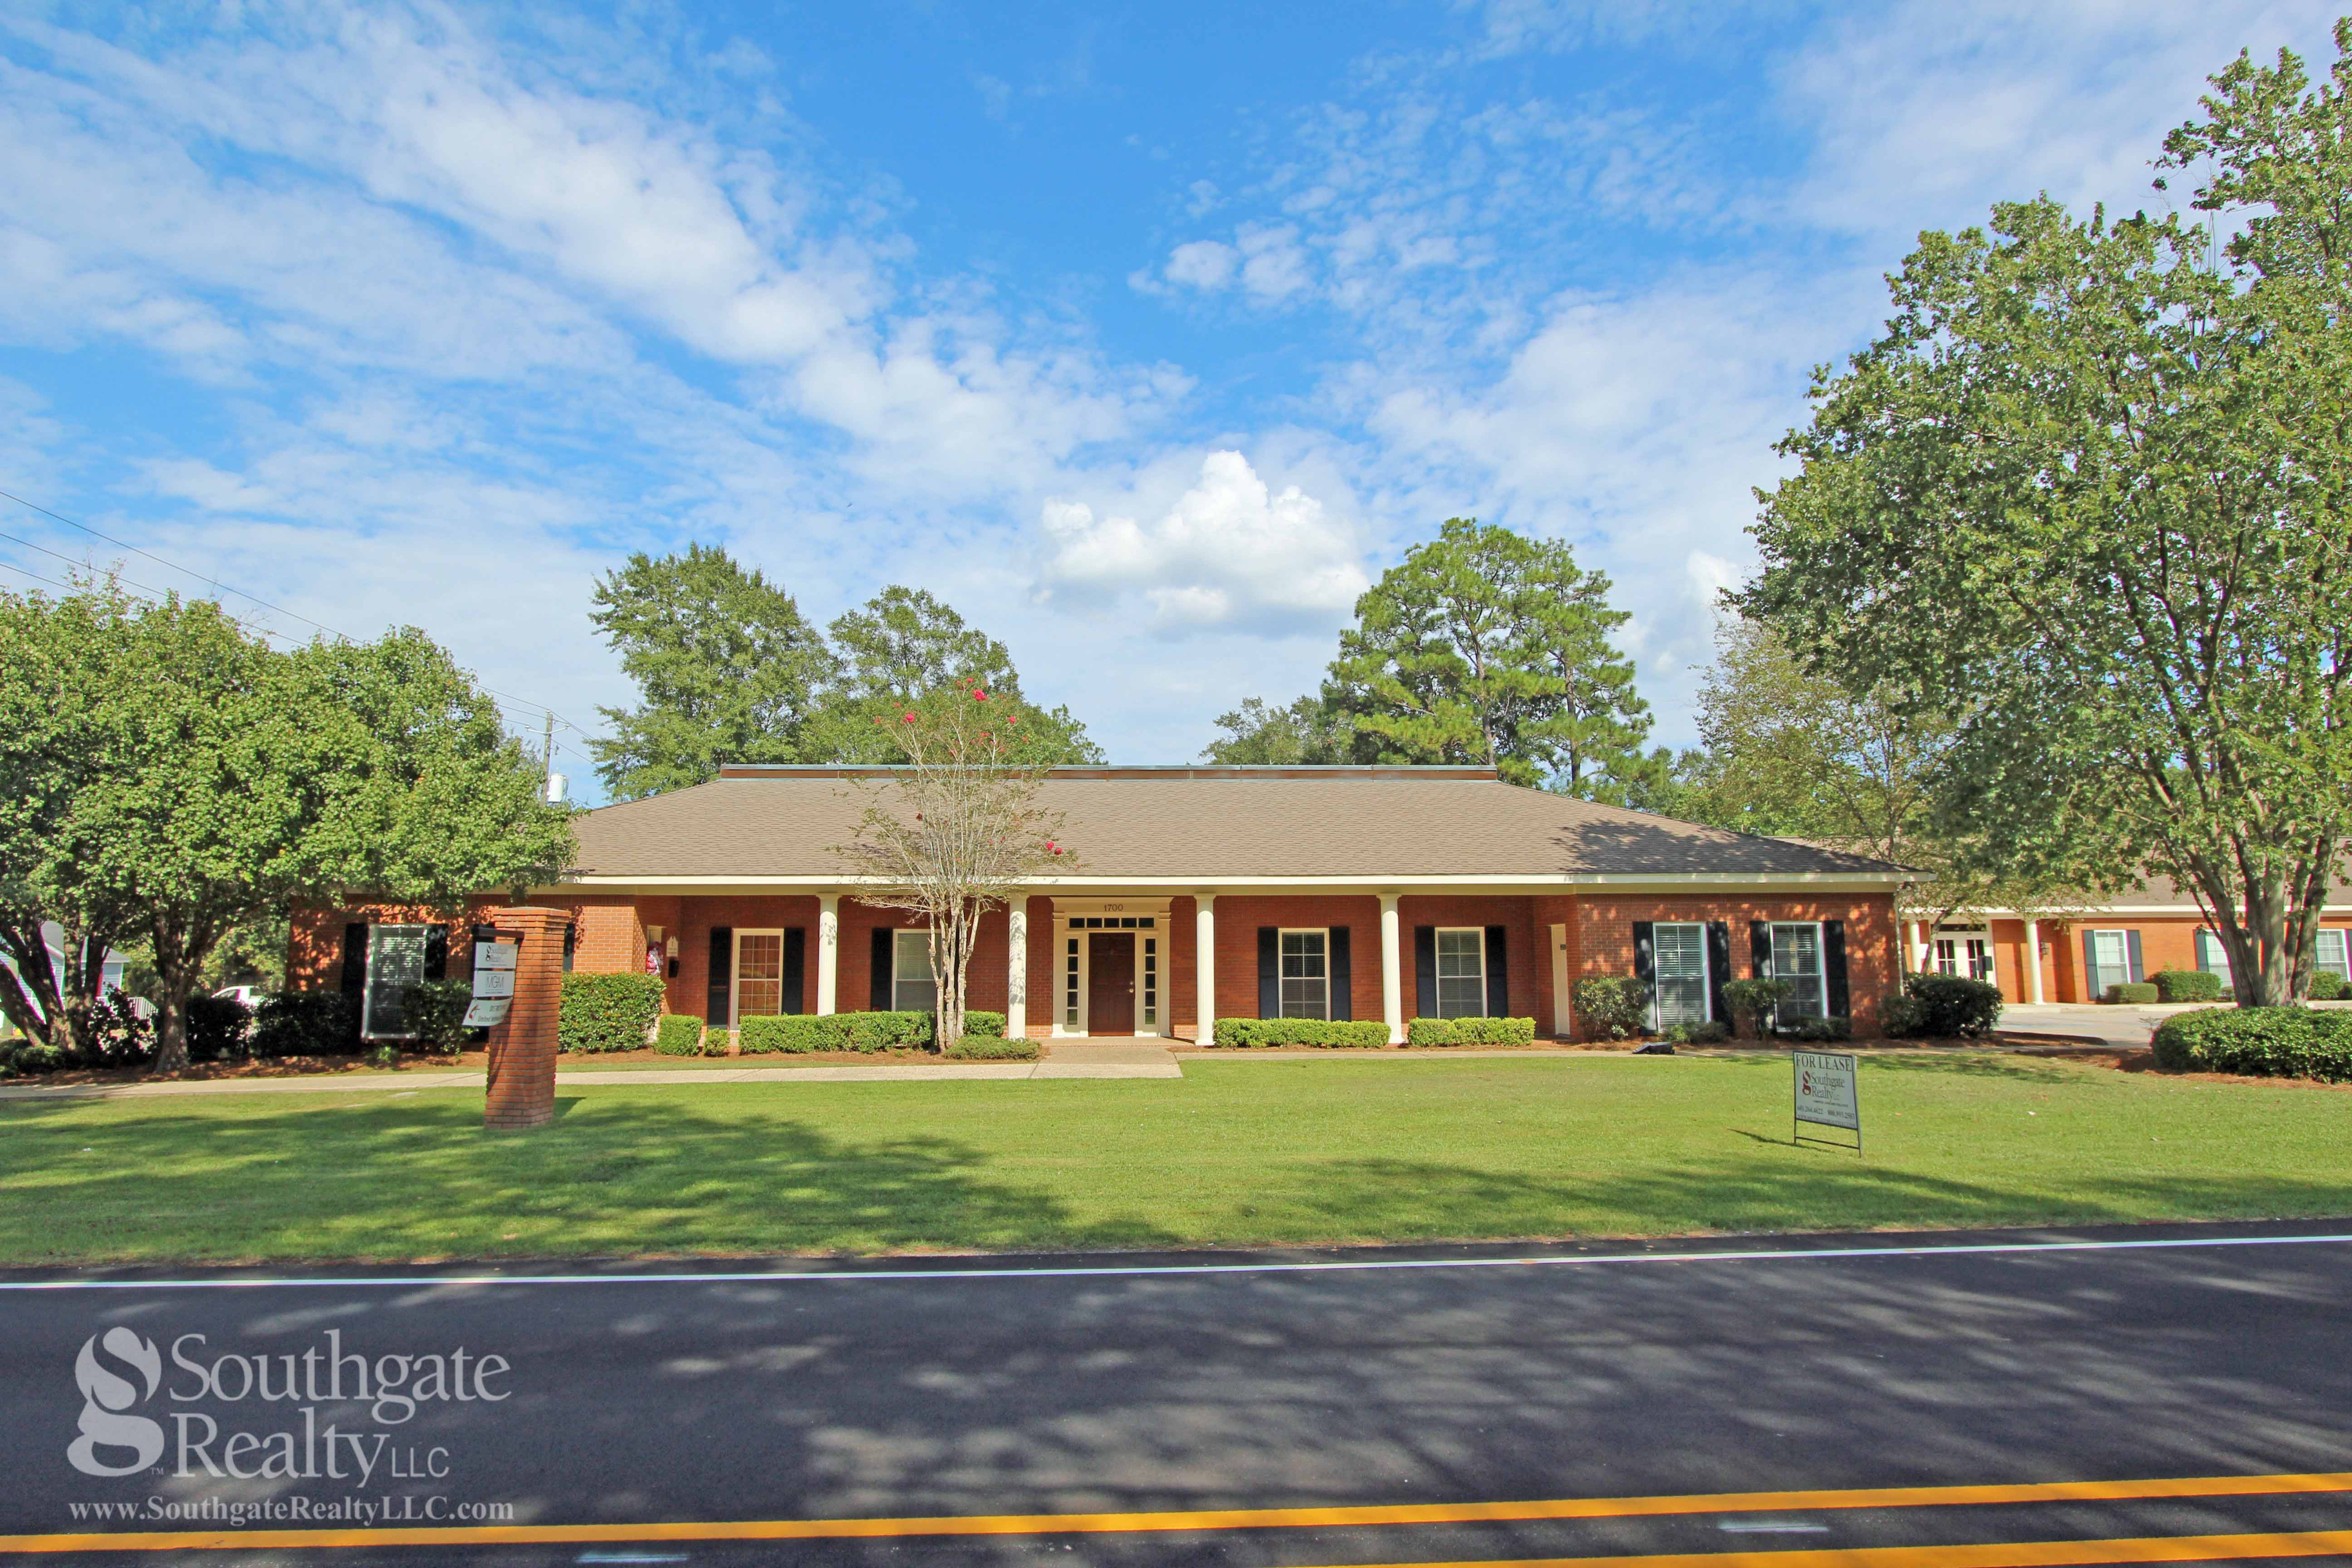 Svn Southgate Realty Llc 1700 S 28th Ave Ste C